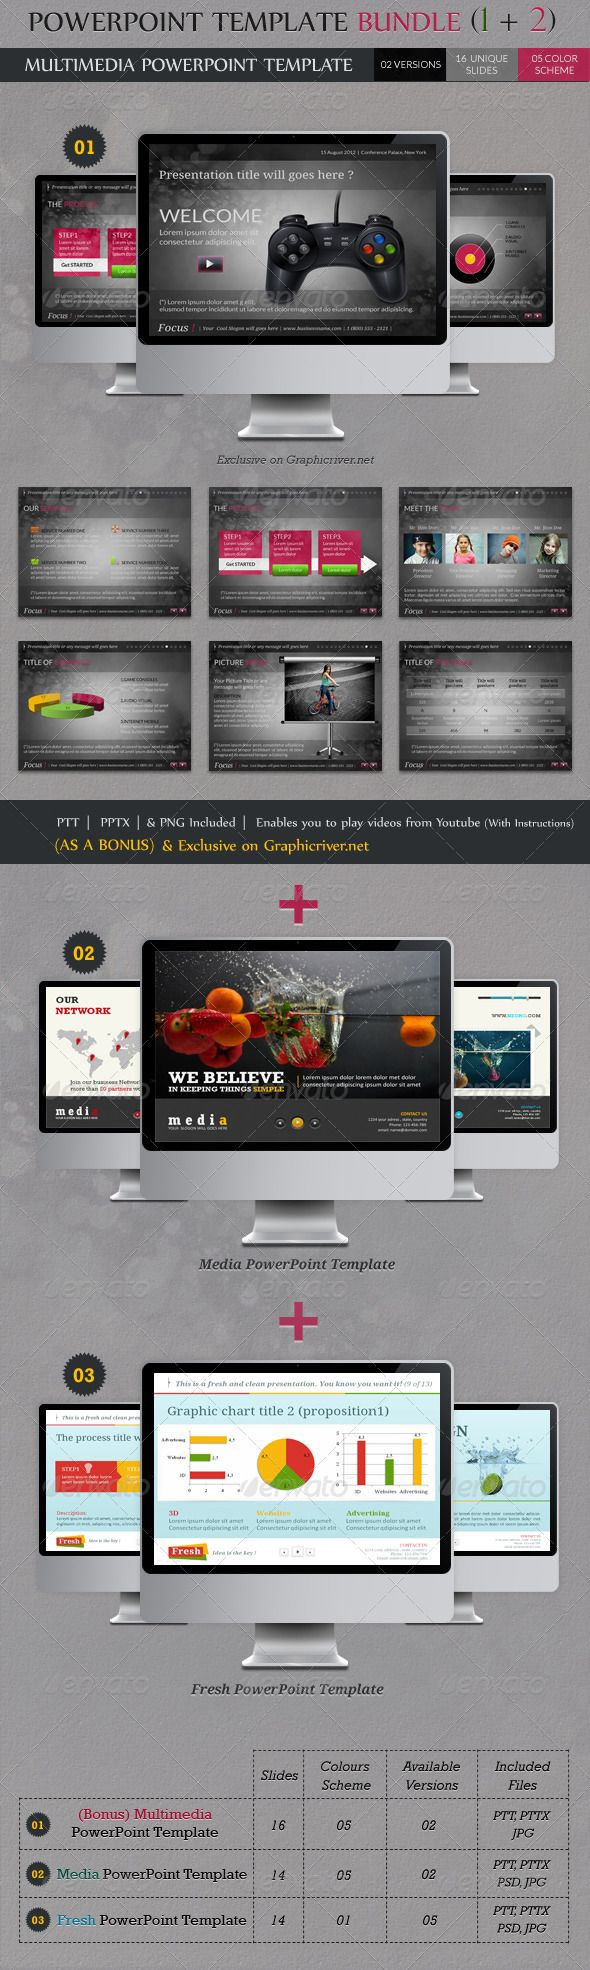 14 best powerpoint templates images on pinterest | presentation, Modern powerpoint